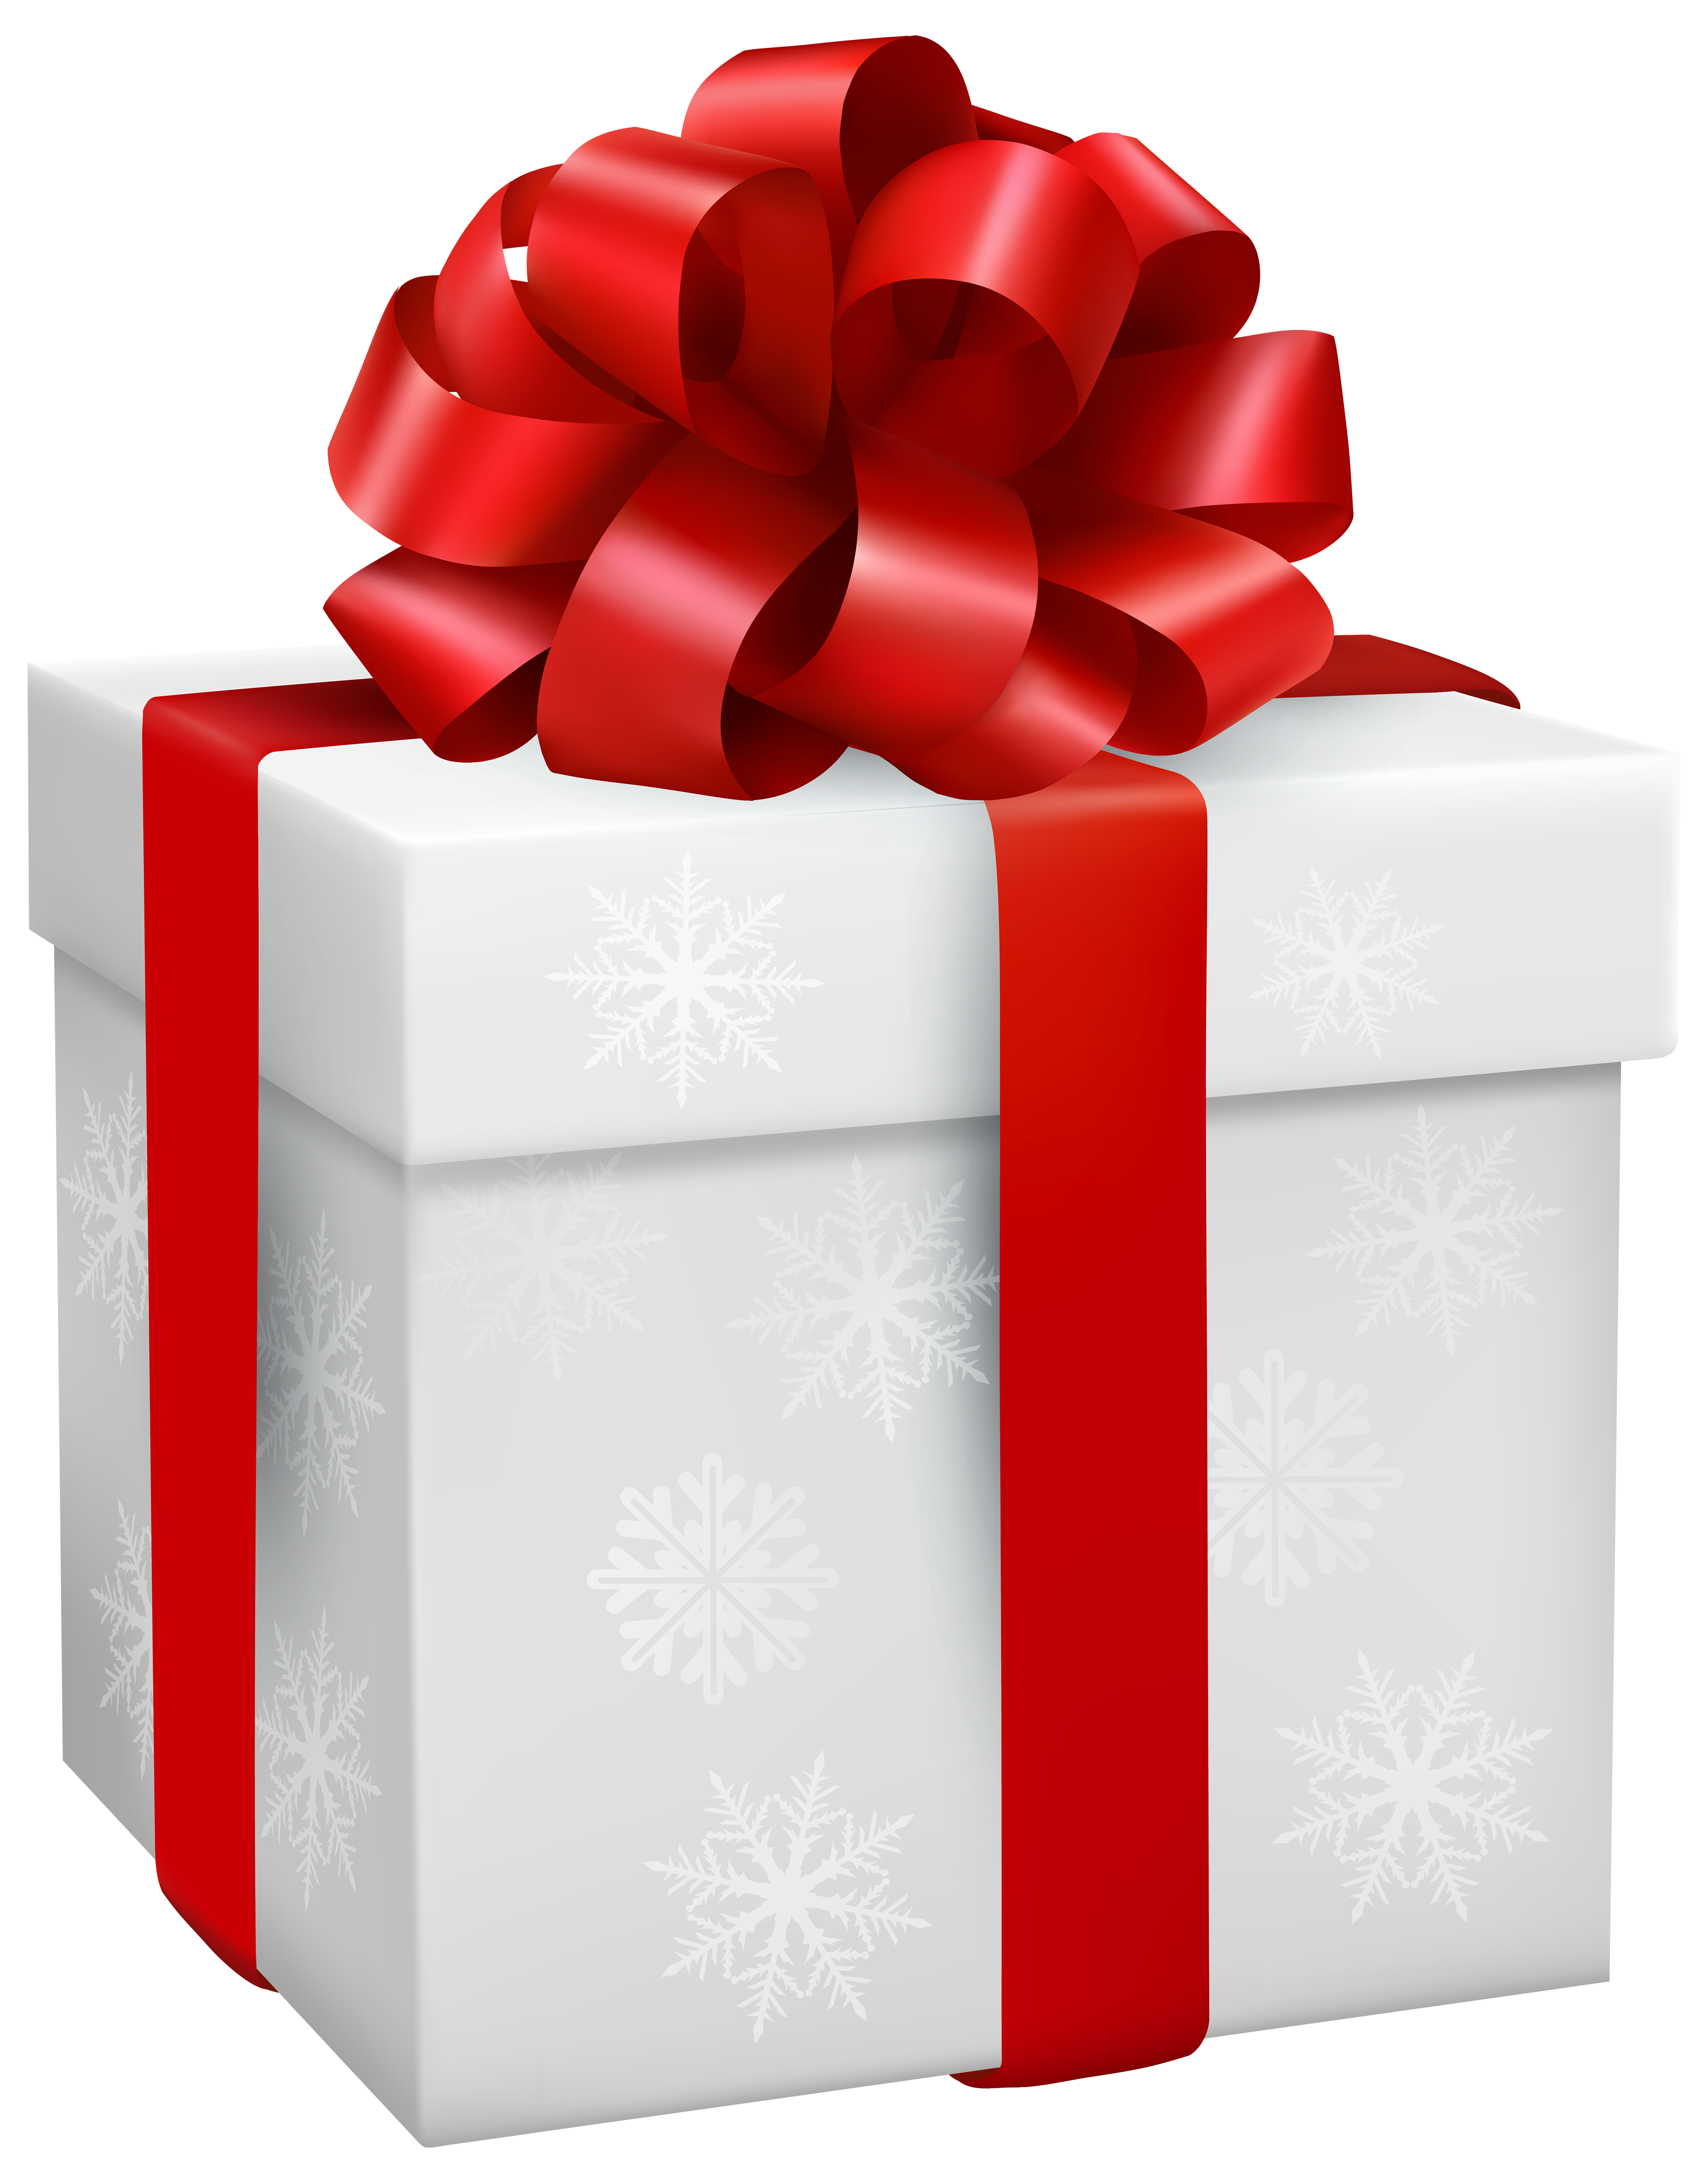 Gift Box with Snowflakes PNG Clipart.